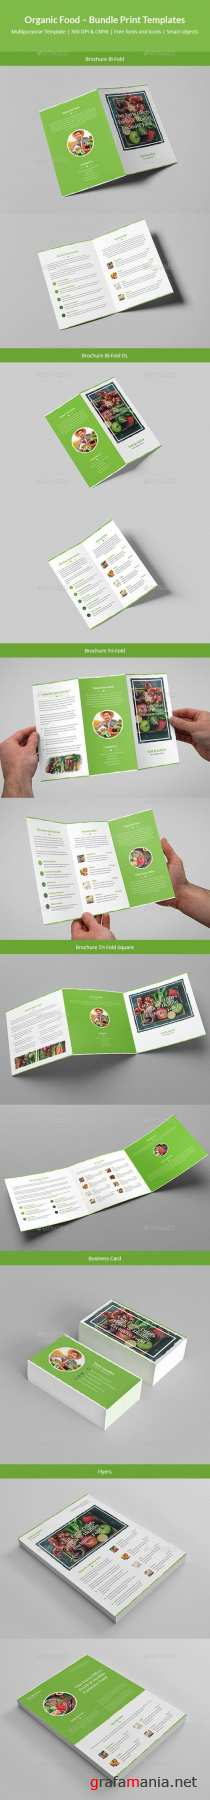 Organic Food – Bundle Print Templates 20801043